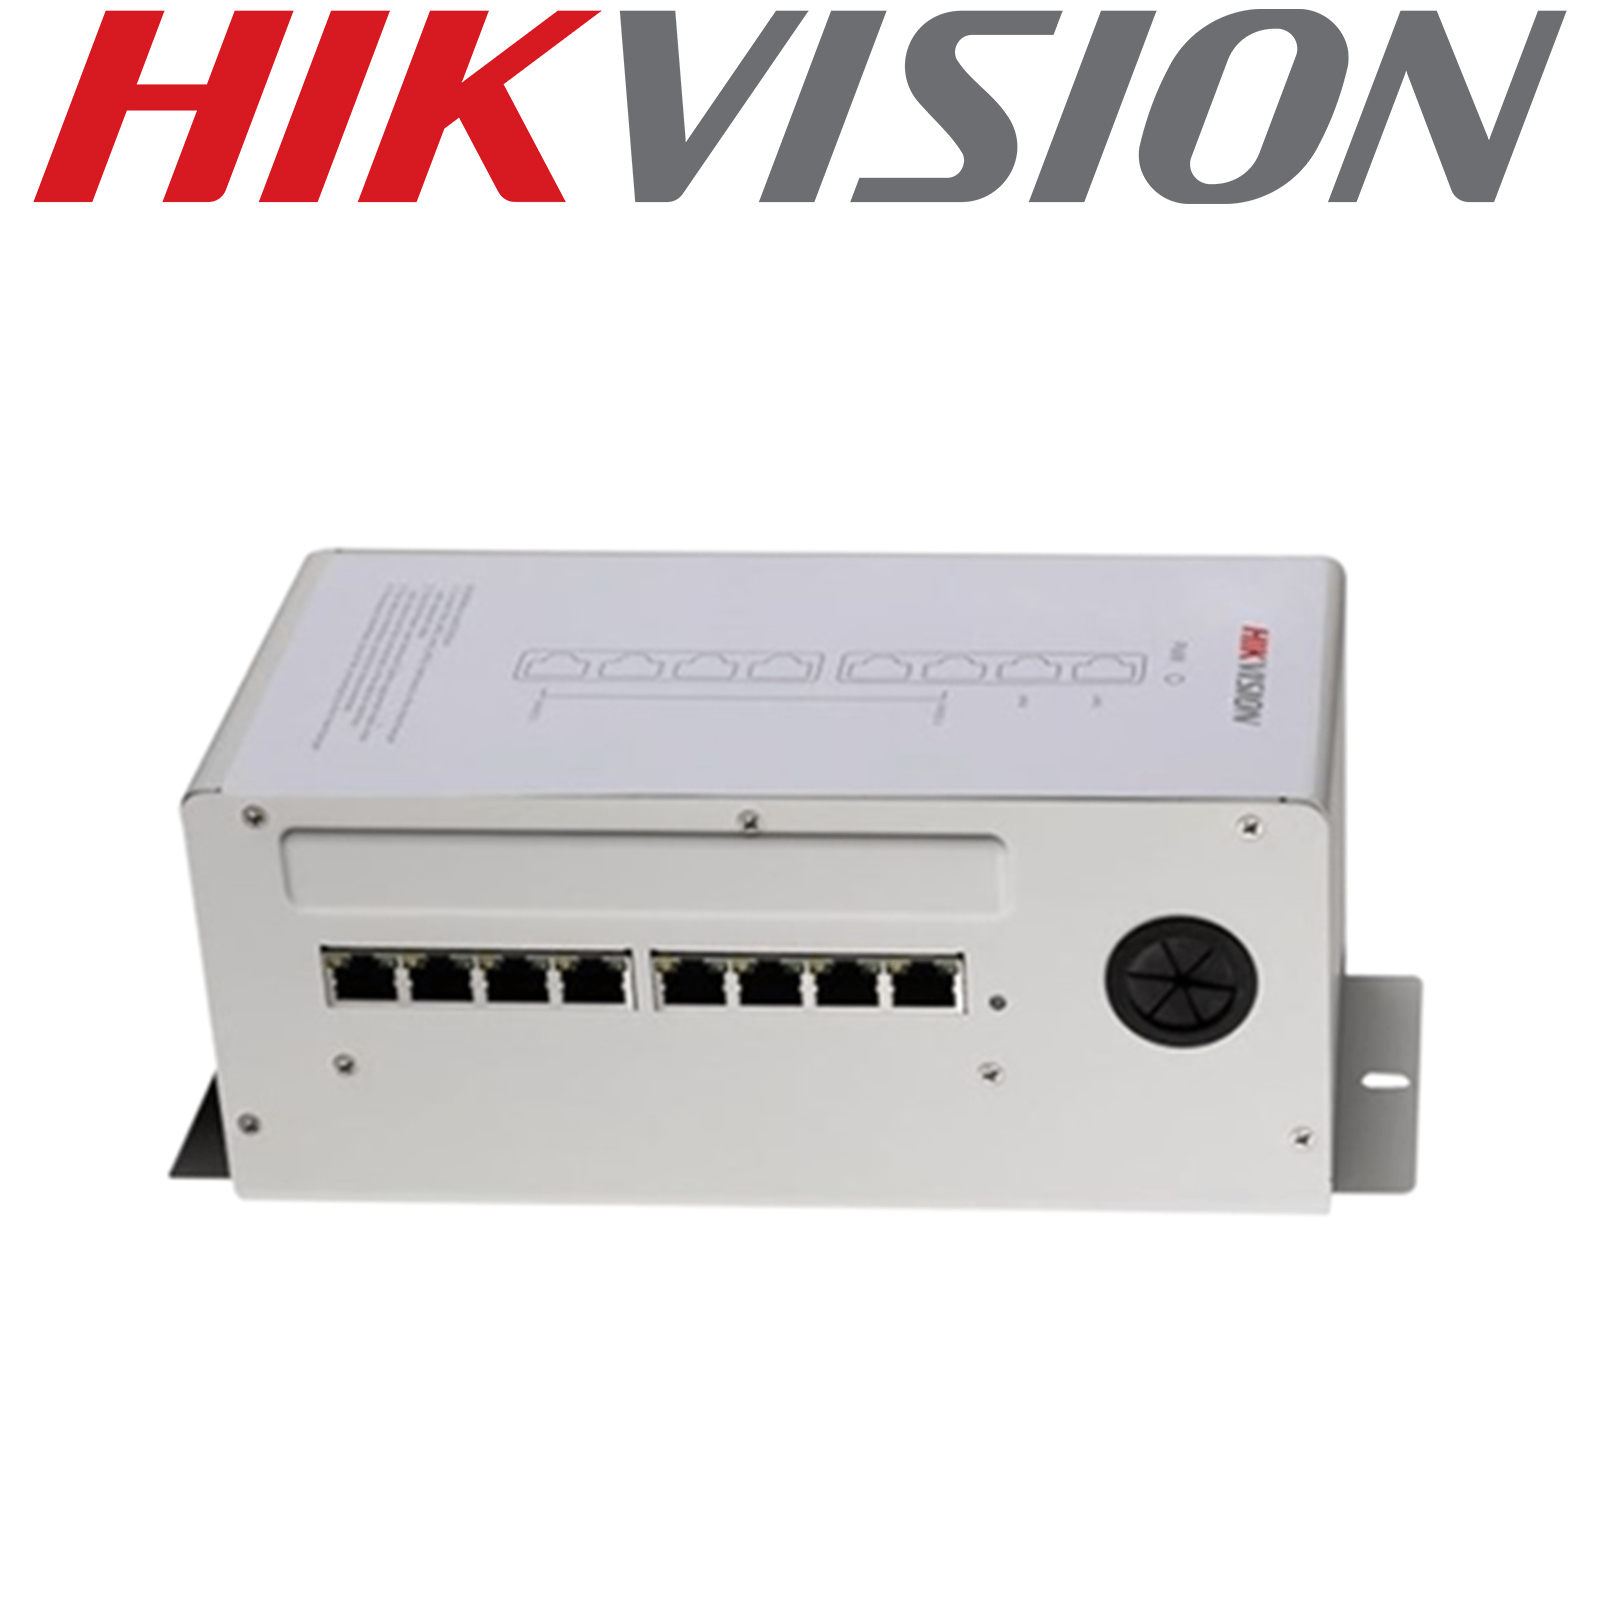 HIKVISION 6 POE PORT 8 RJ45 VIDEO AUDIO DESKTOP POWER DISTRIBUTOR DS-KAD606